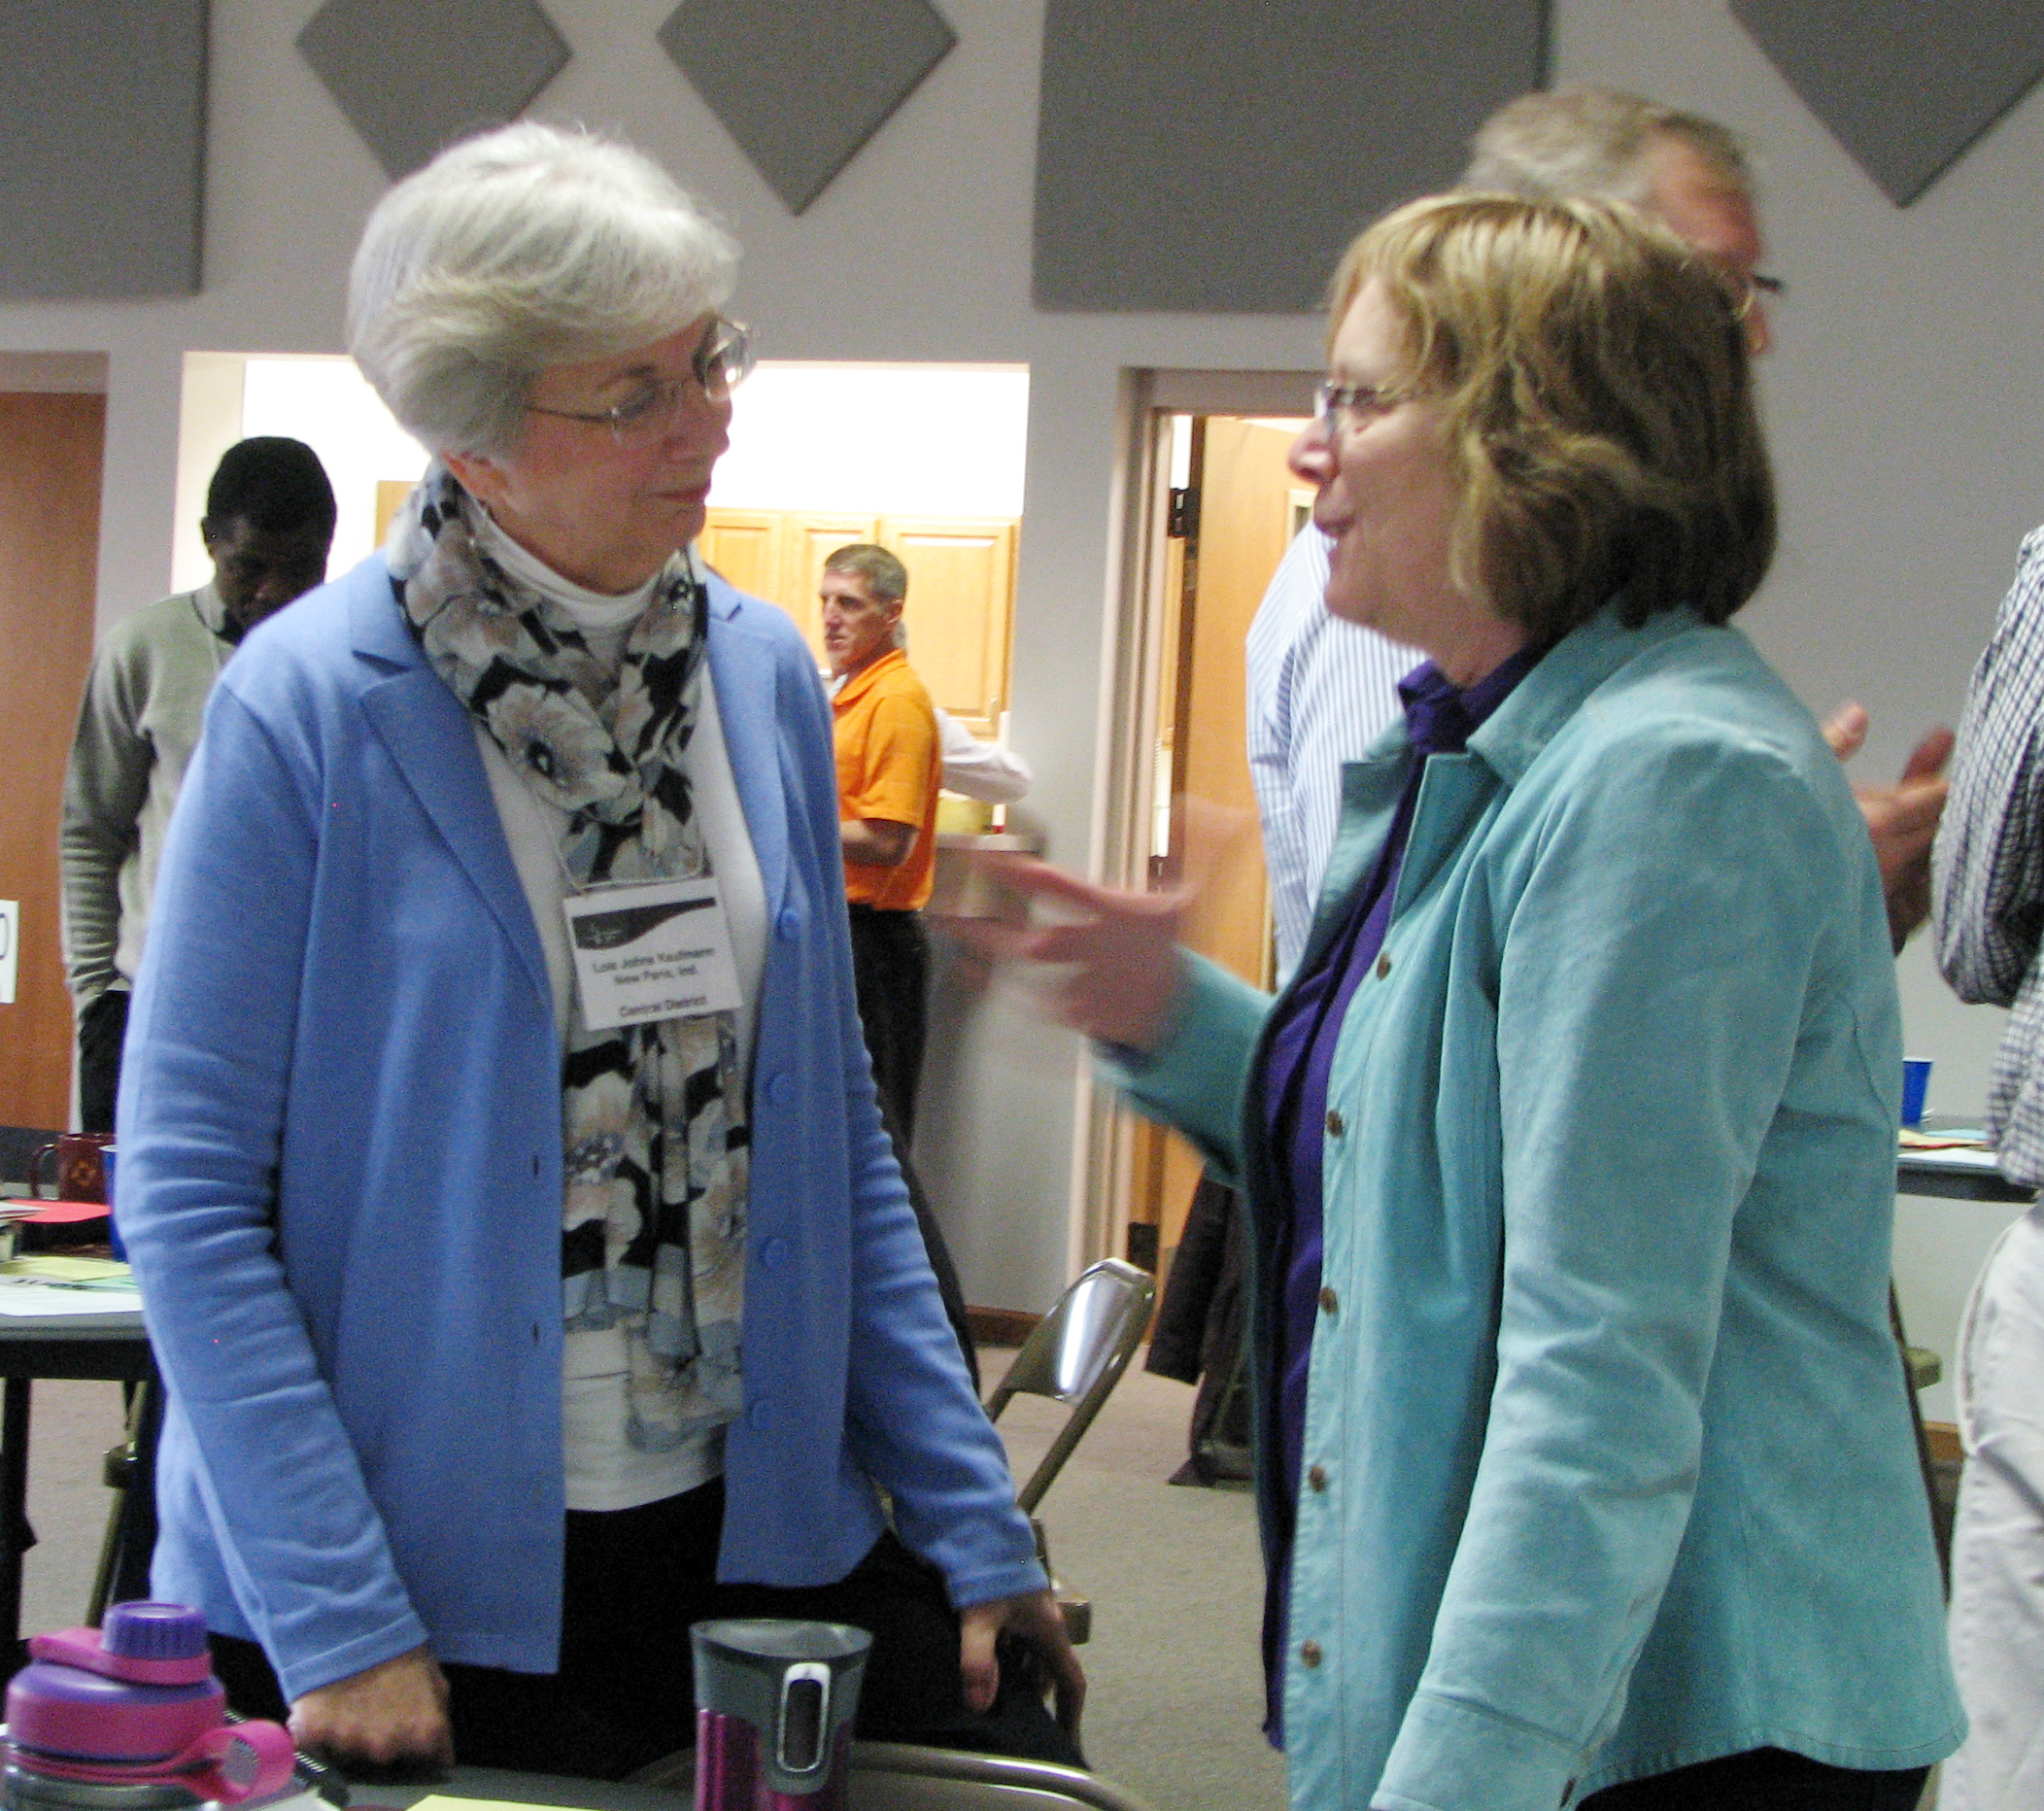 Lois Johns Kaufmann, conference minister for Central District Conference, talks with Nancy Kauffmann, denominational minister for Mennonite Church USA, at the March Constituency Leaders Council meeting at Silverwood Mennonite Church in Goshen, Indiana. At the meeting, Johns Kaufmann was honored for her years of ministry. She plans to retire this summer. (Photo by Annette Brill Bergstresser)